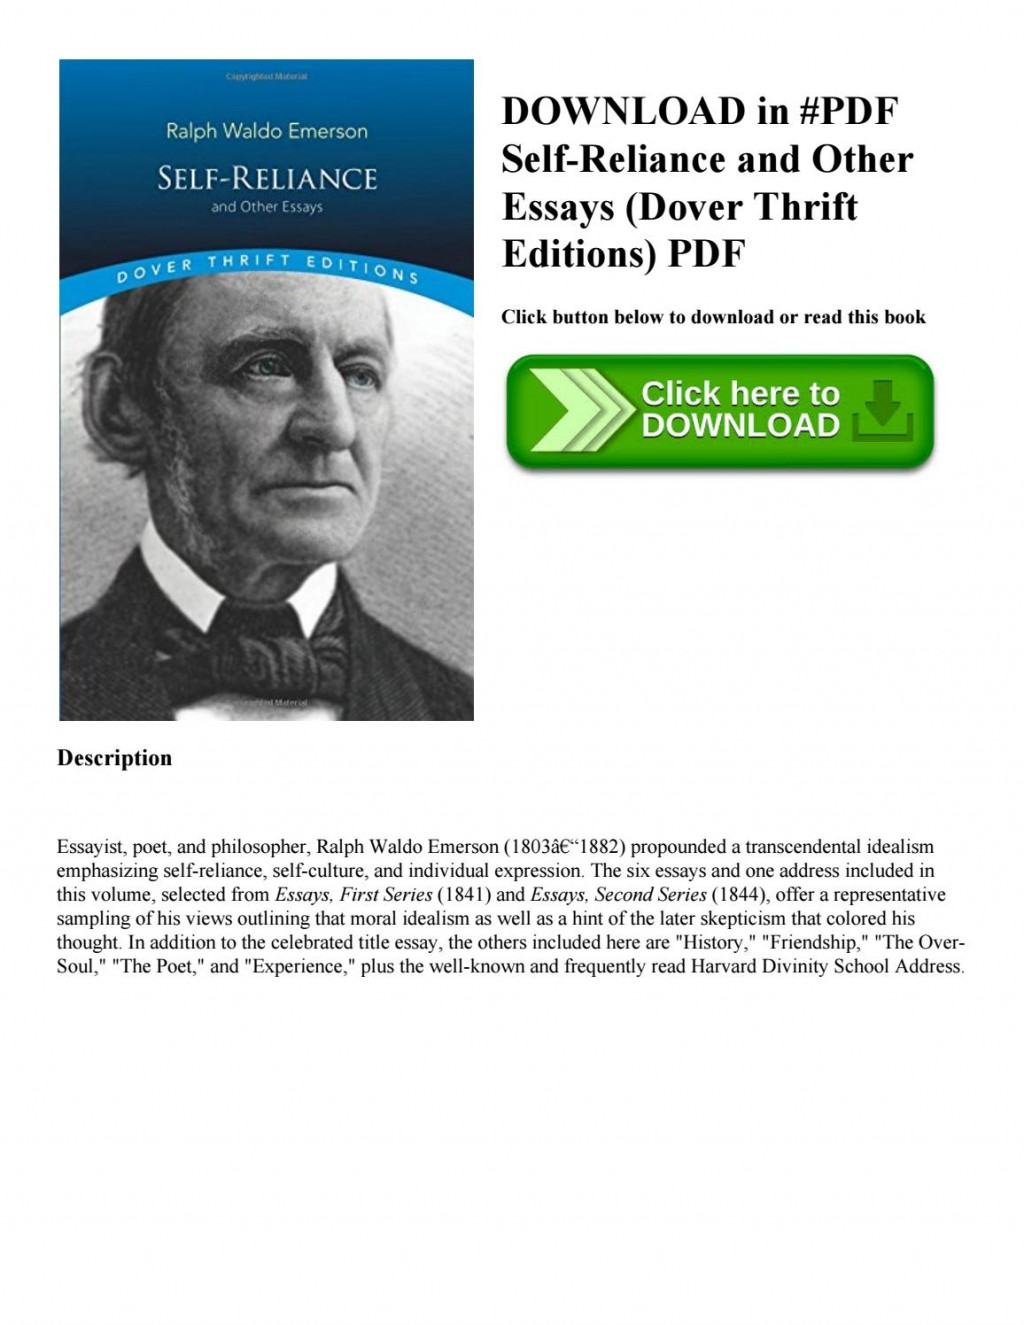 007 Page 1 Self Reliance And Other Essays Essay Formidable Ekşi Self-reliance (dover Thrift Editions) Pdf Epub Large